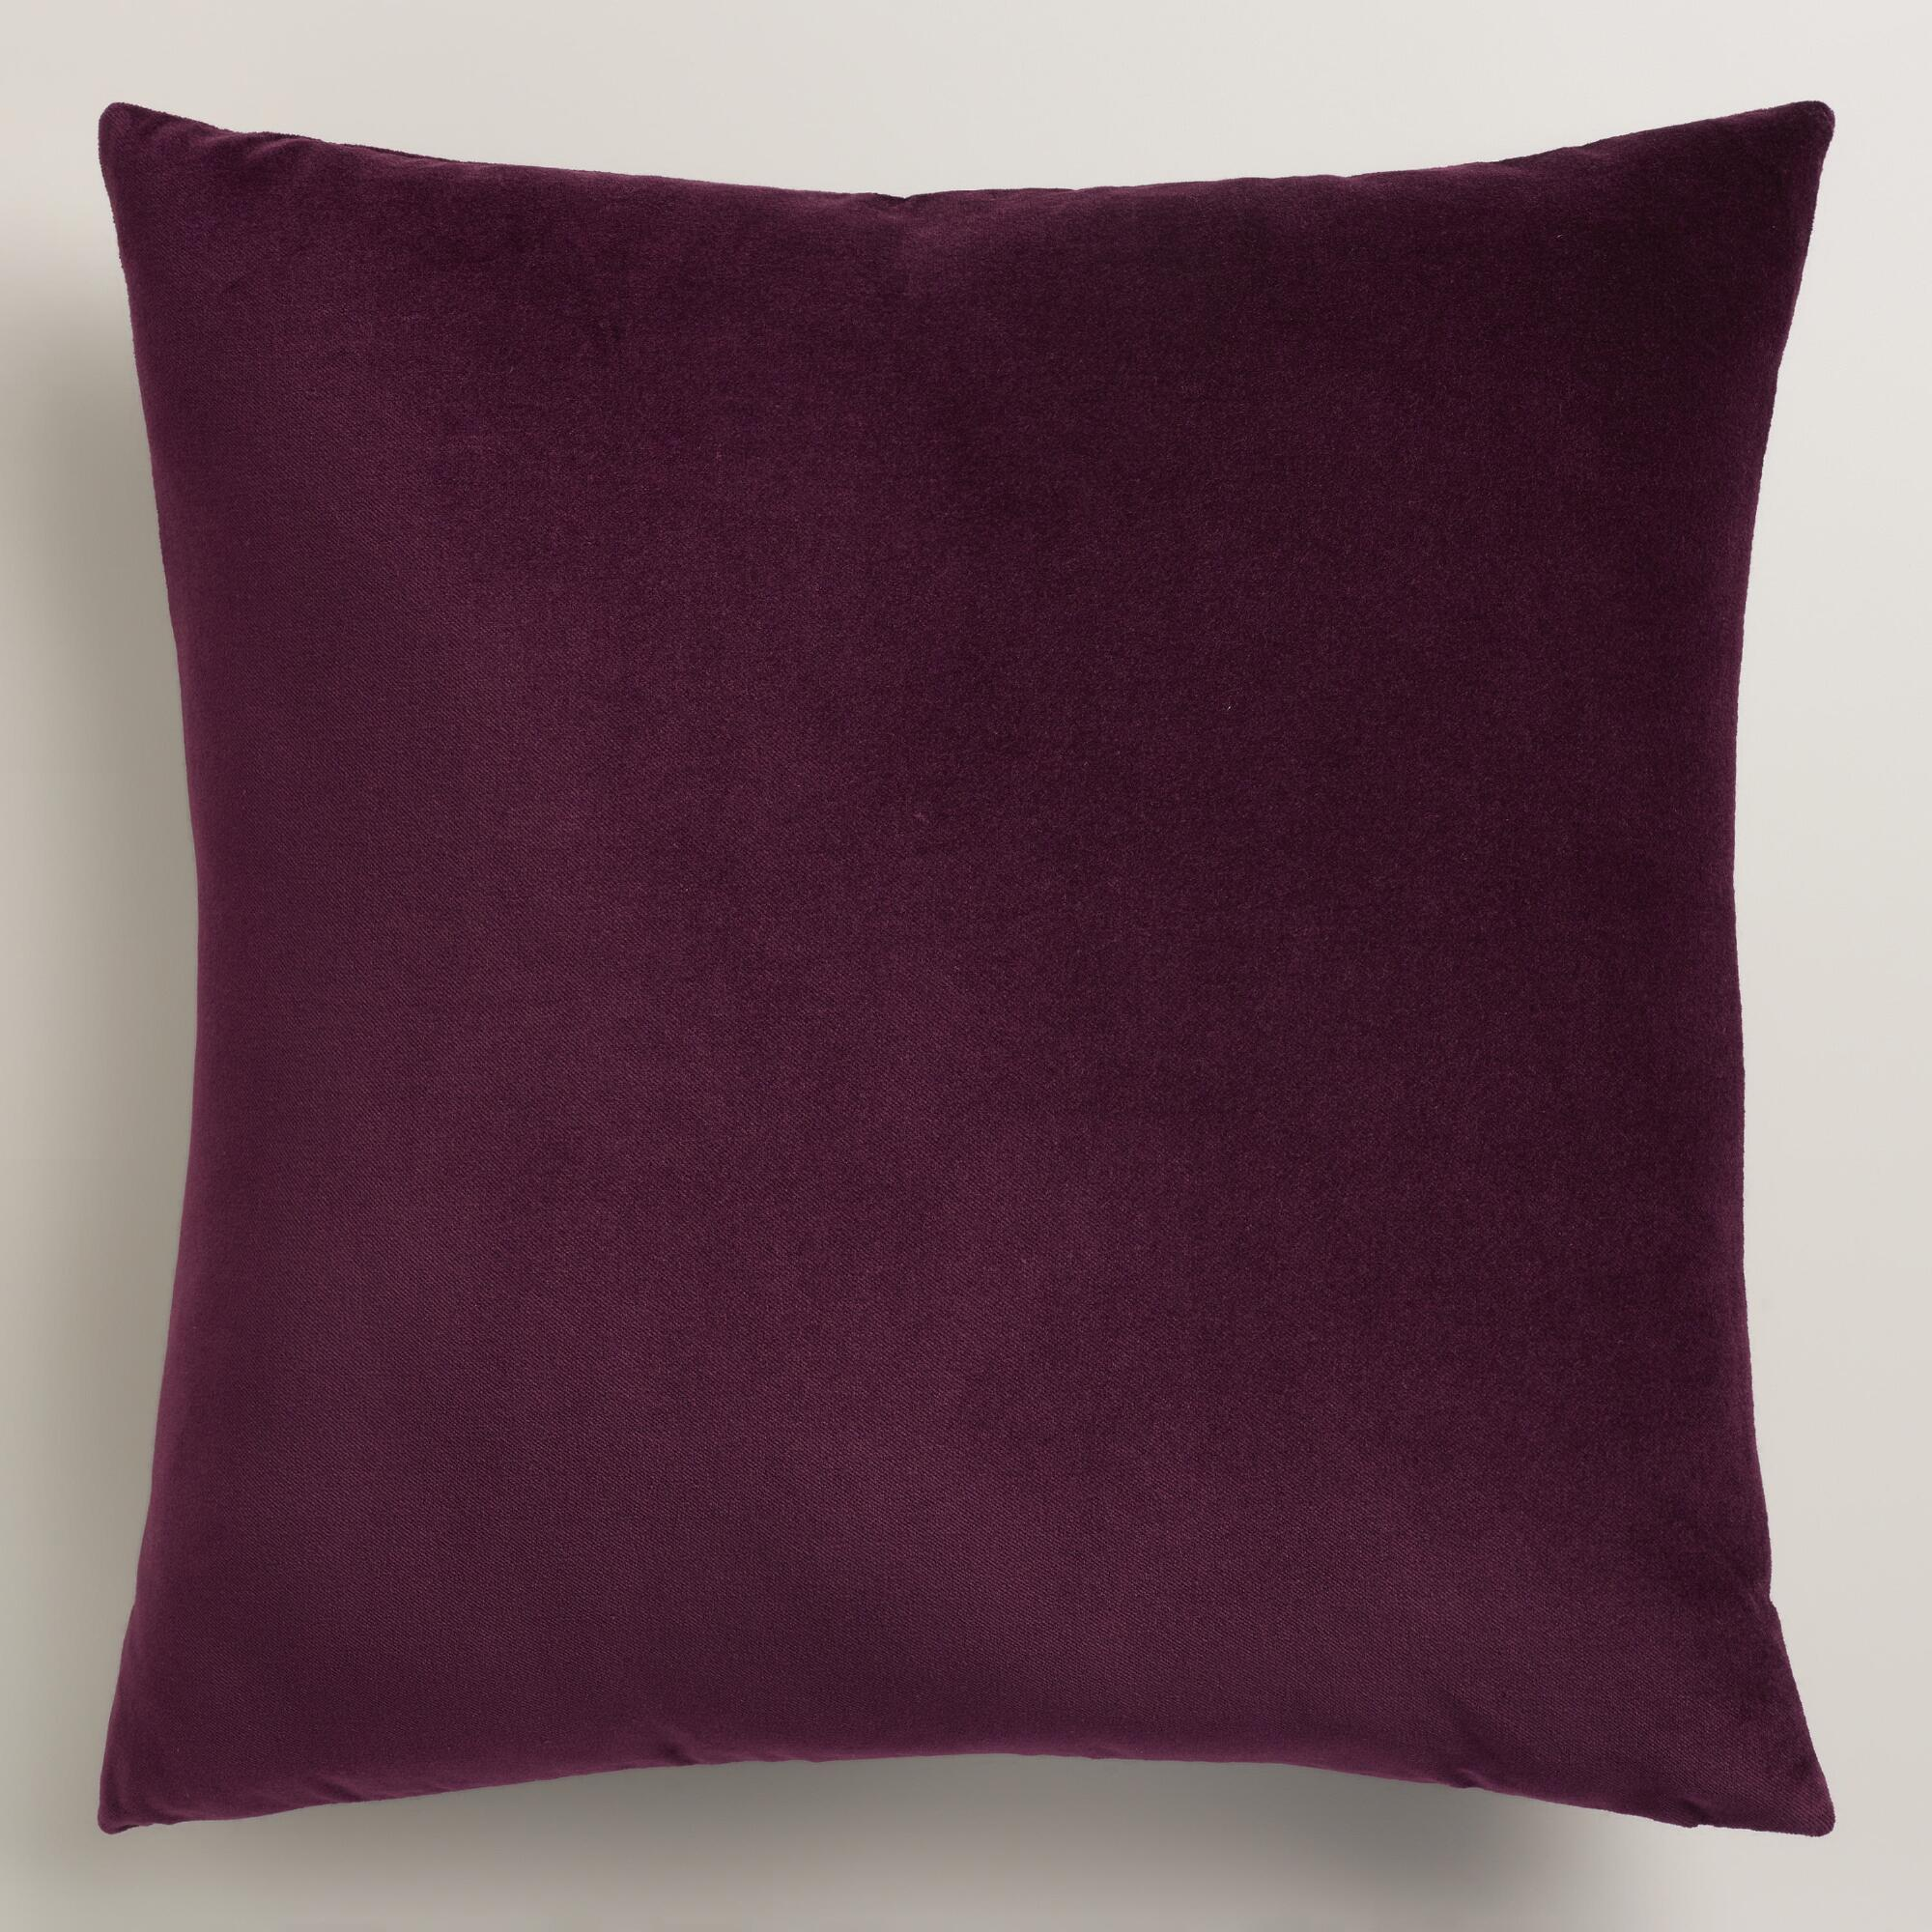 Purple Velvet Decorative Pillows : Our Local Ad Wish List Blog World Market Explorer #DISCOVERWORLDMARKET Inspiration